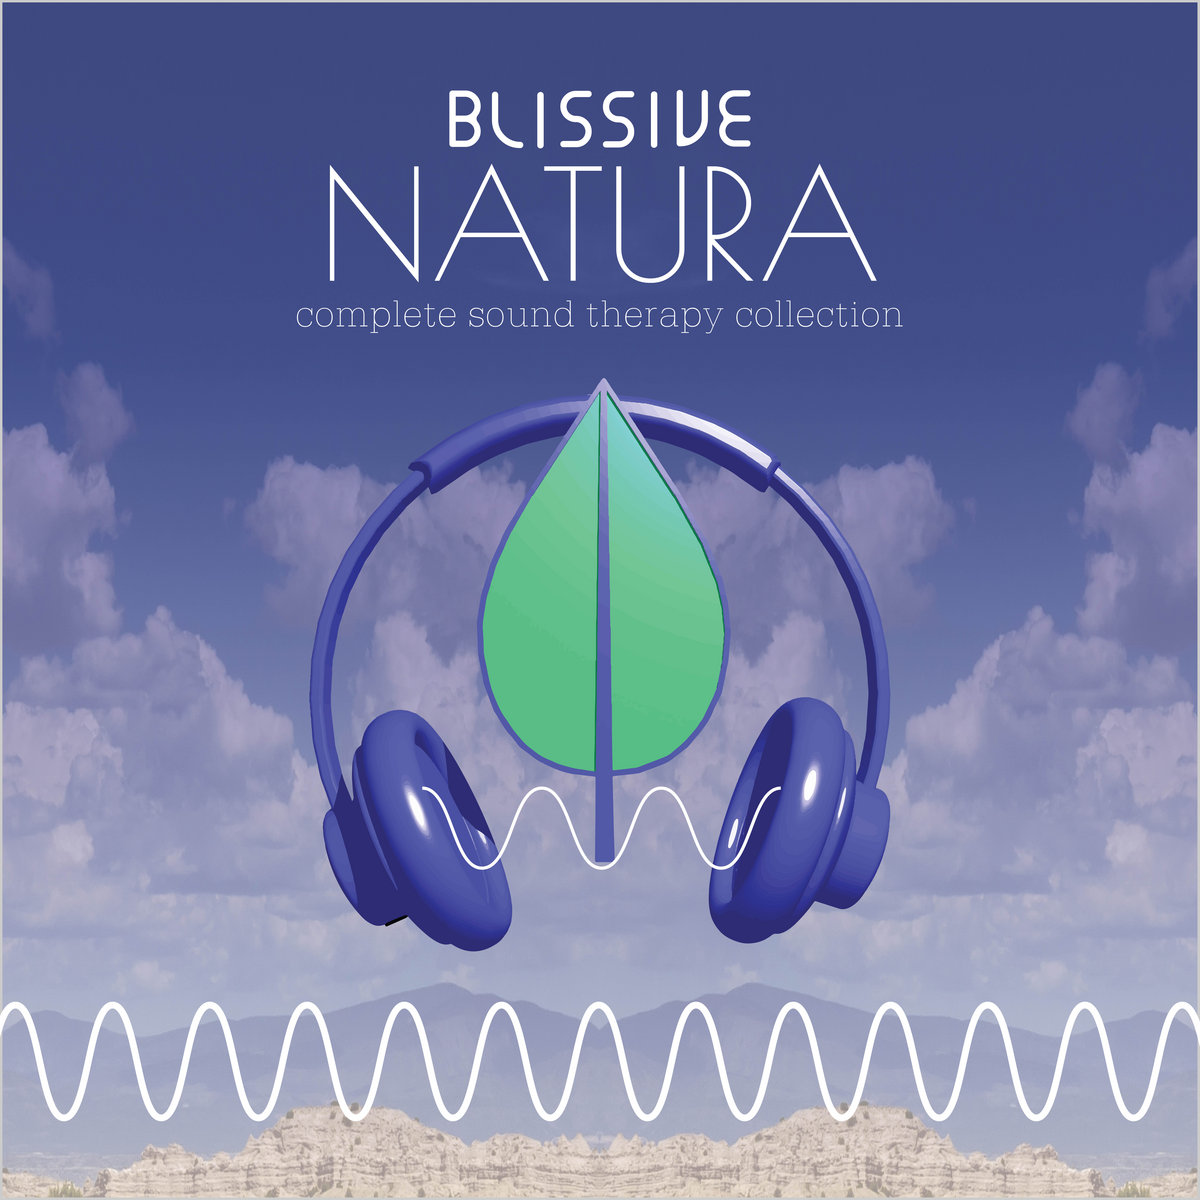 natura sound therapy serial